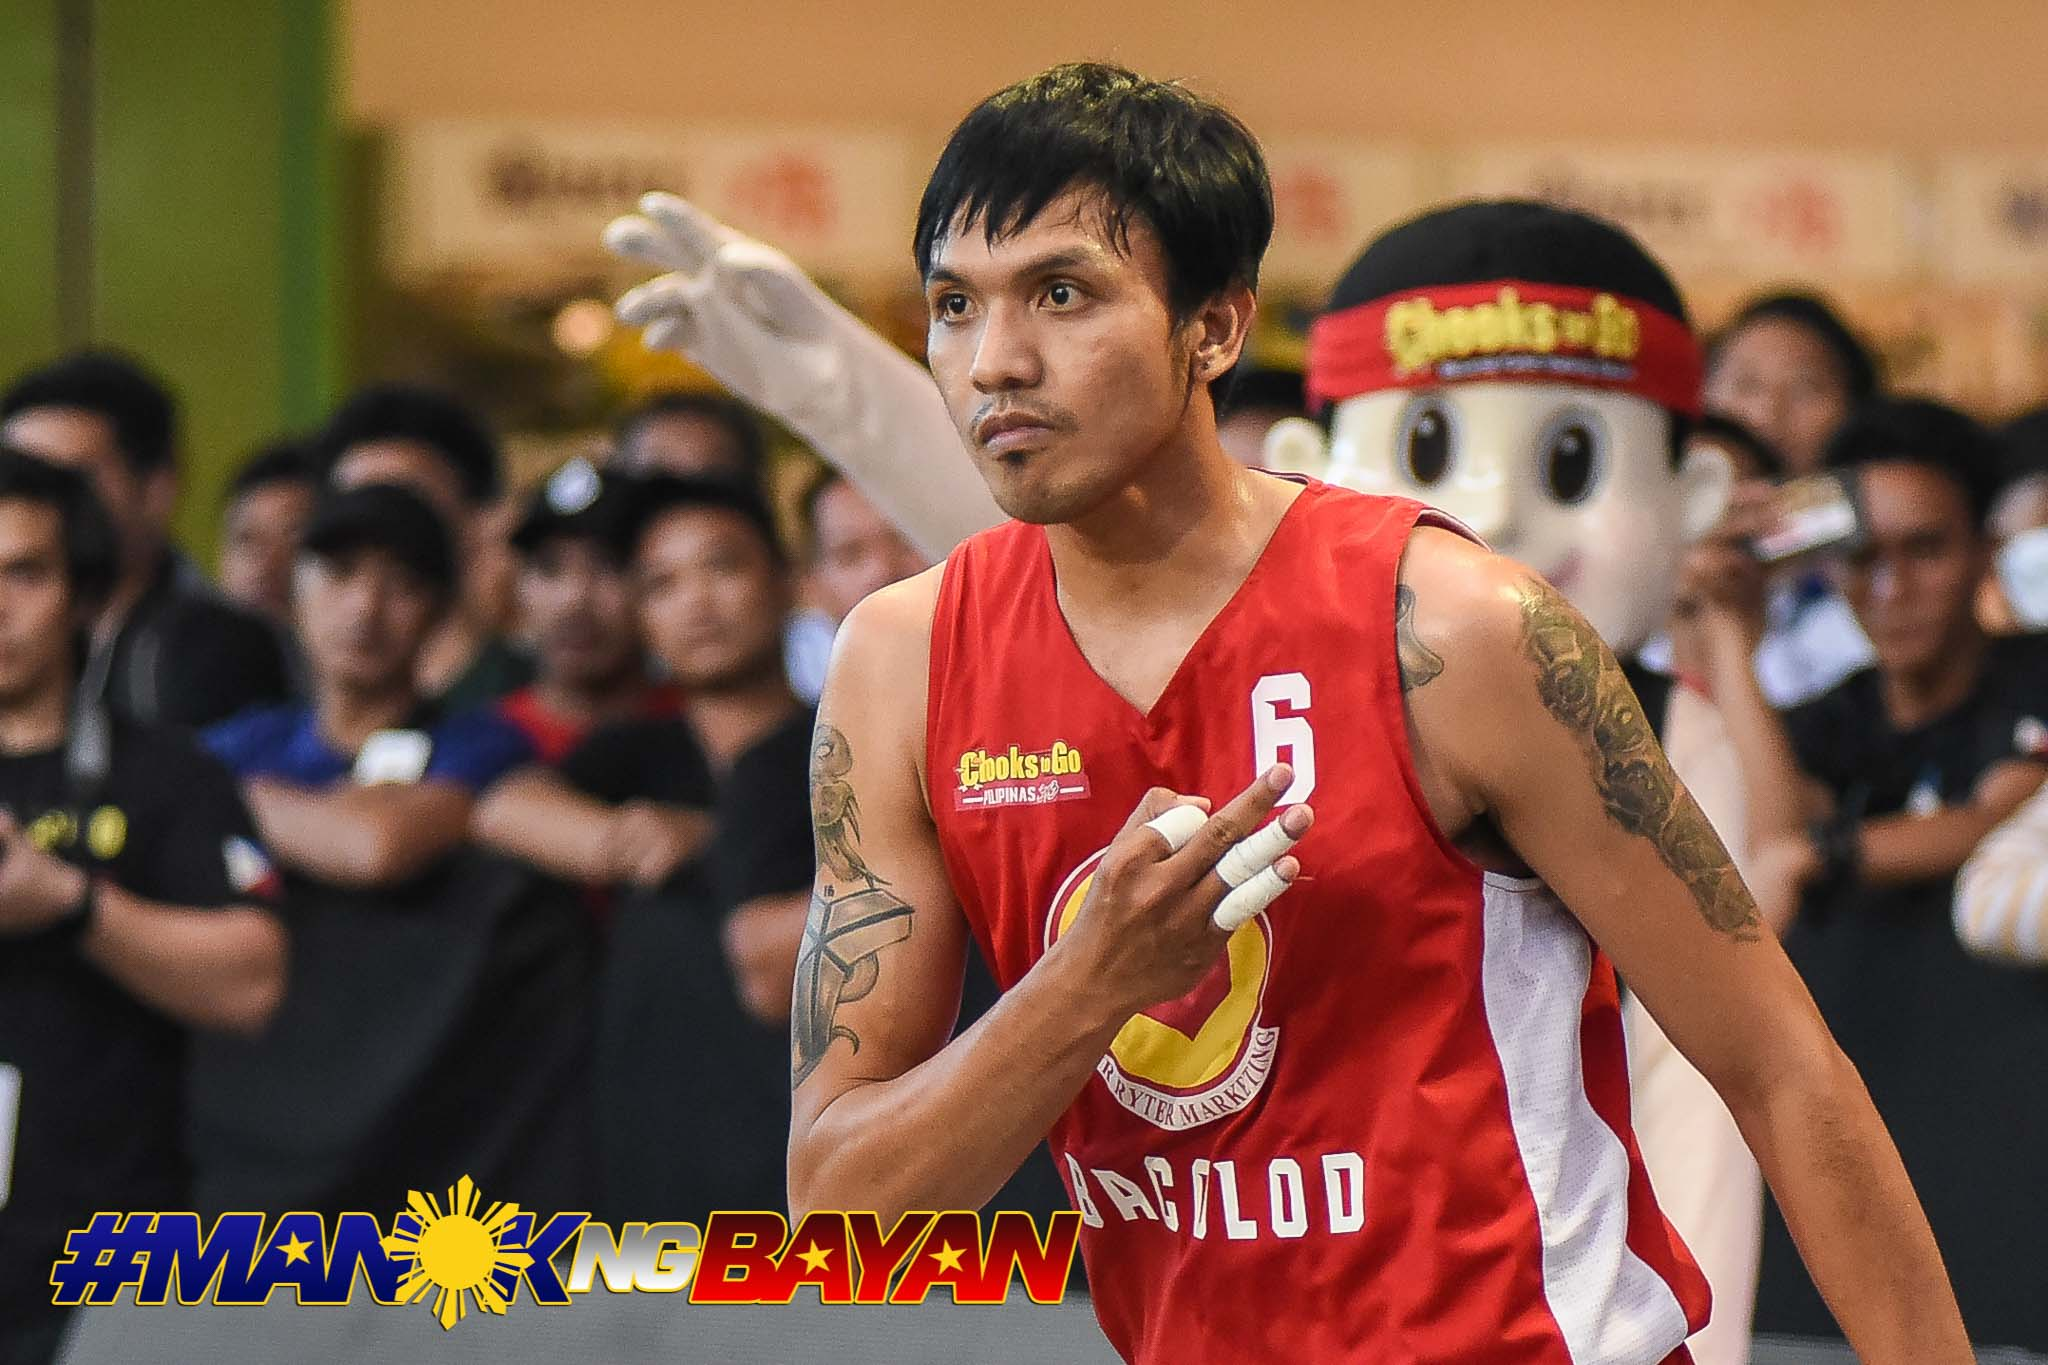 Tiebreaker Times Celada, Yee lift Fyr Fyter Bacolod to top of Magiting Cup second leg 3x3 Basketball Chooks-to-Go Pilipinas 3x3 News  Thunder Pateros Hunters Rodel Vaygan nico bolos Mindoro Tamaraws Mark Yee Mark Dela Cruz Louie Medalla Joshua Saret James Martinez Fyr Fyter Bacolod David Carlos Basilan Steel Adrian Celada 2019 Chooks-to-Go Pilipinas 3x3 Season 2019 Chooks-to-Go Pilipinas 3x3 Magiting Cup